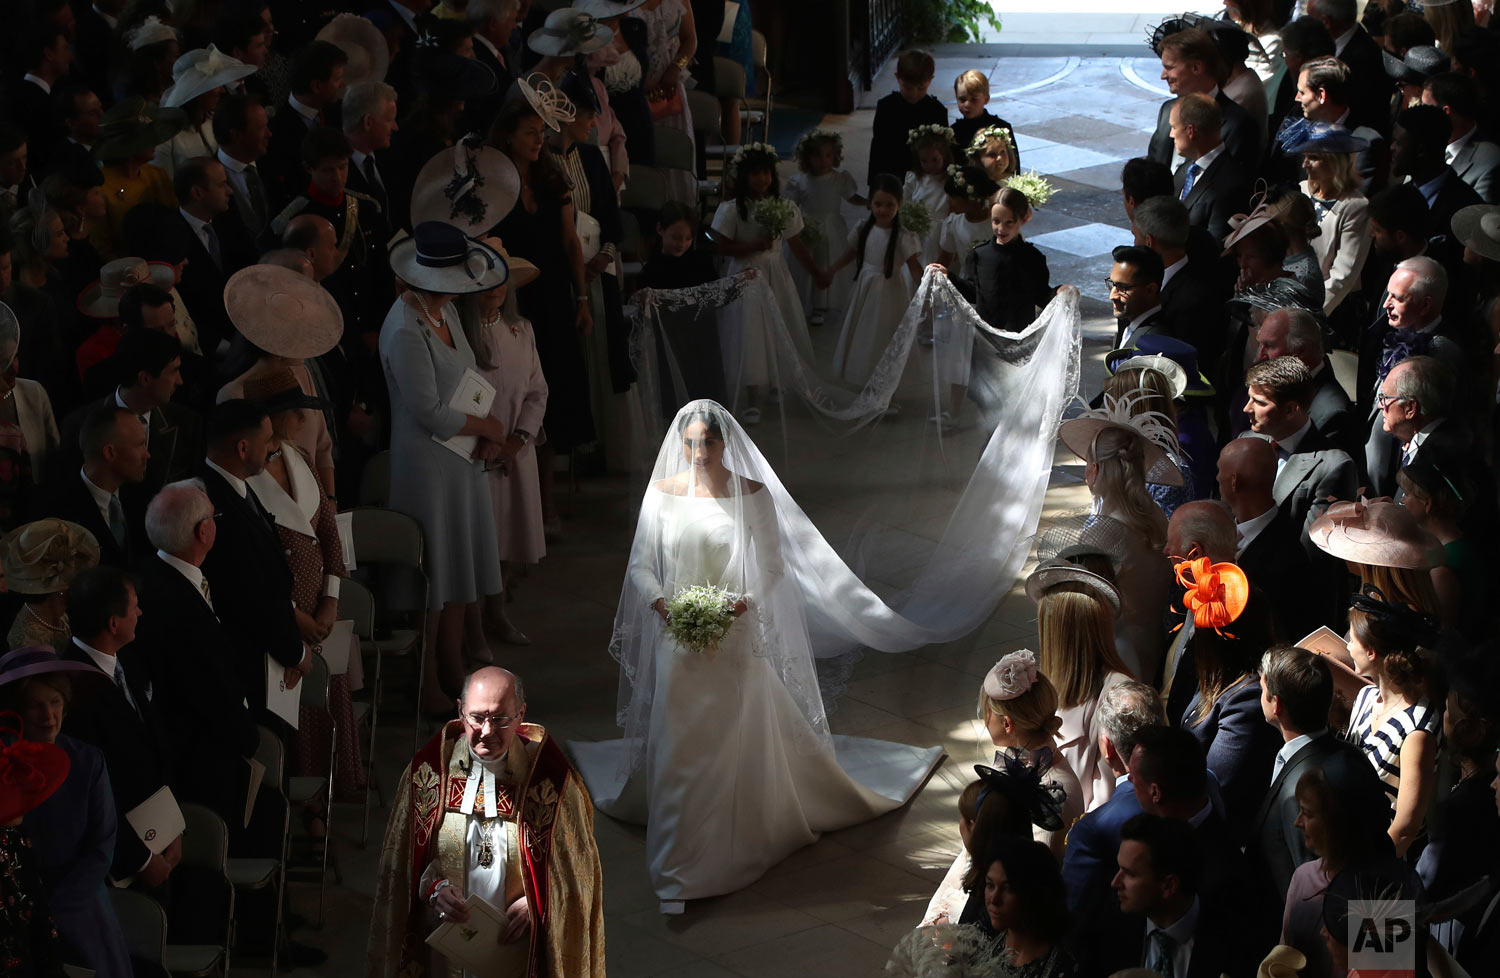 Meghan Markle walks down the aisle as she arrives for her wedding ceremony to Prince Harry at St. George's Chapel in Windsor Castle in Windsor, near London, England, Saturday, May 19, 2018. (Danny Lawson/Pool Photo via AP)